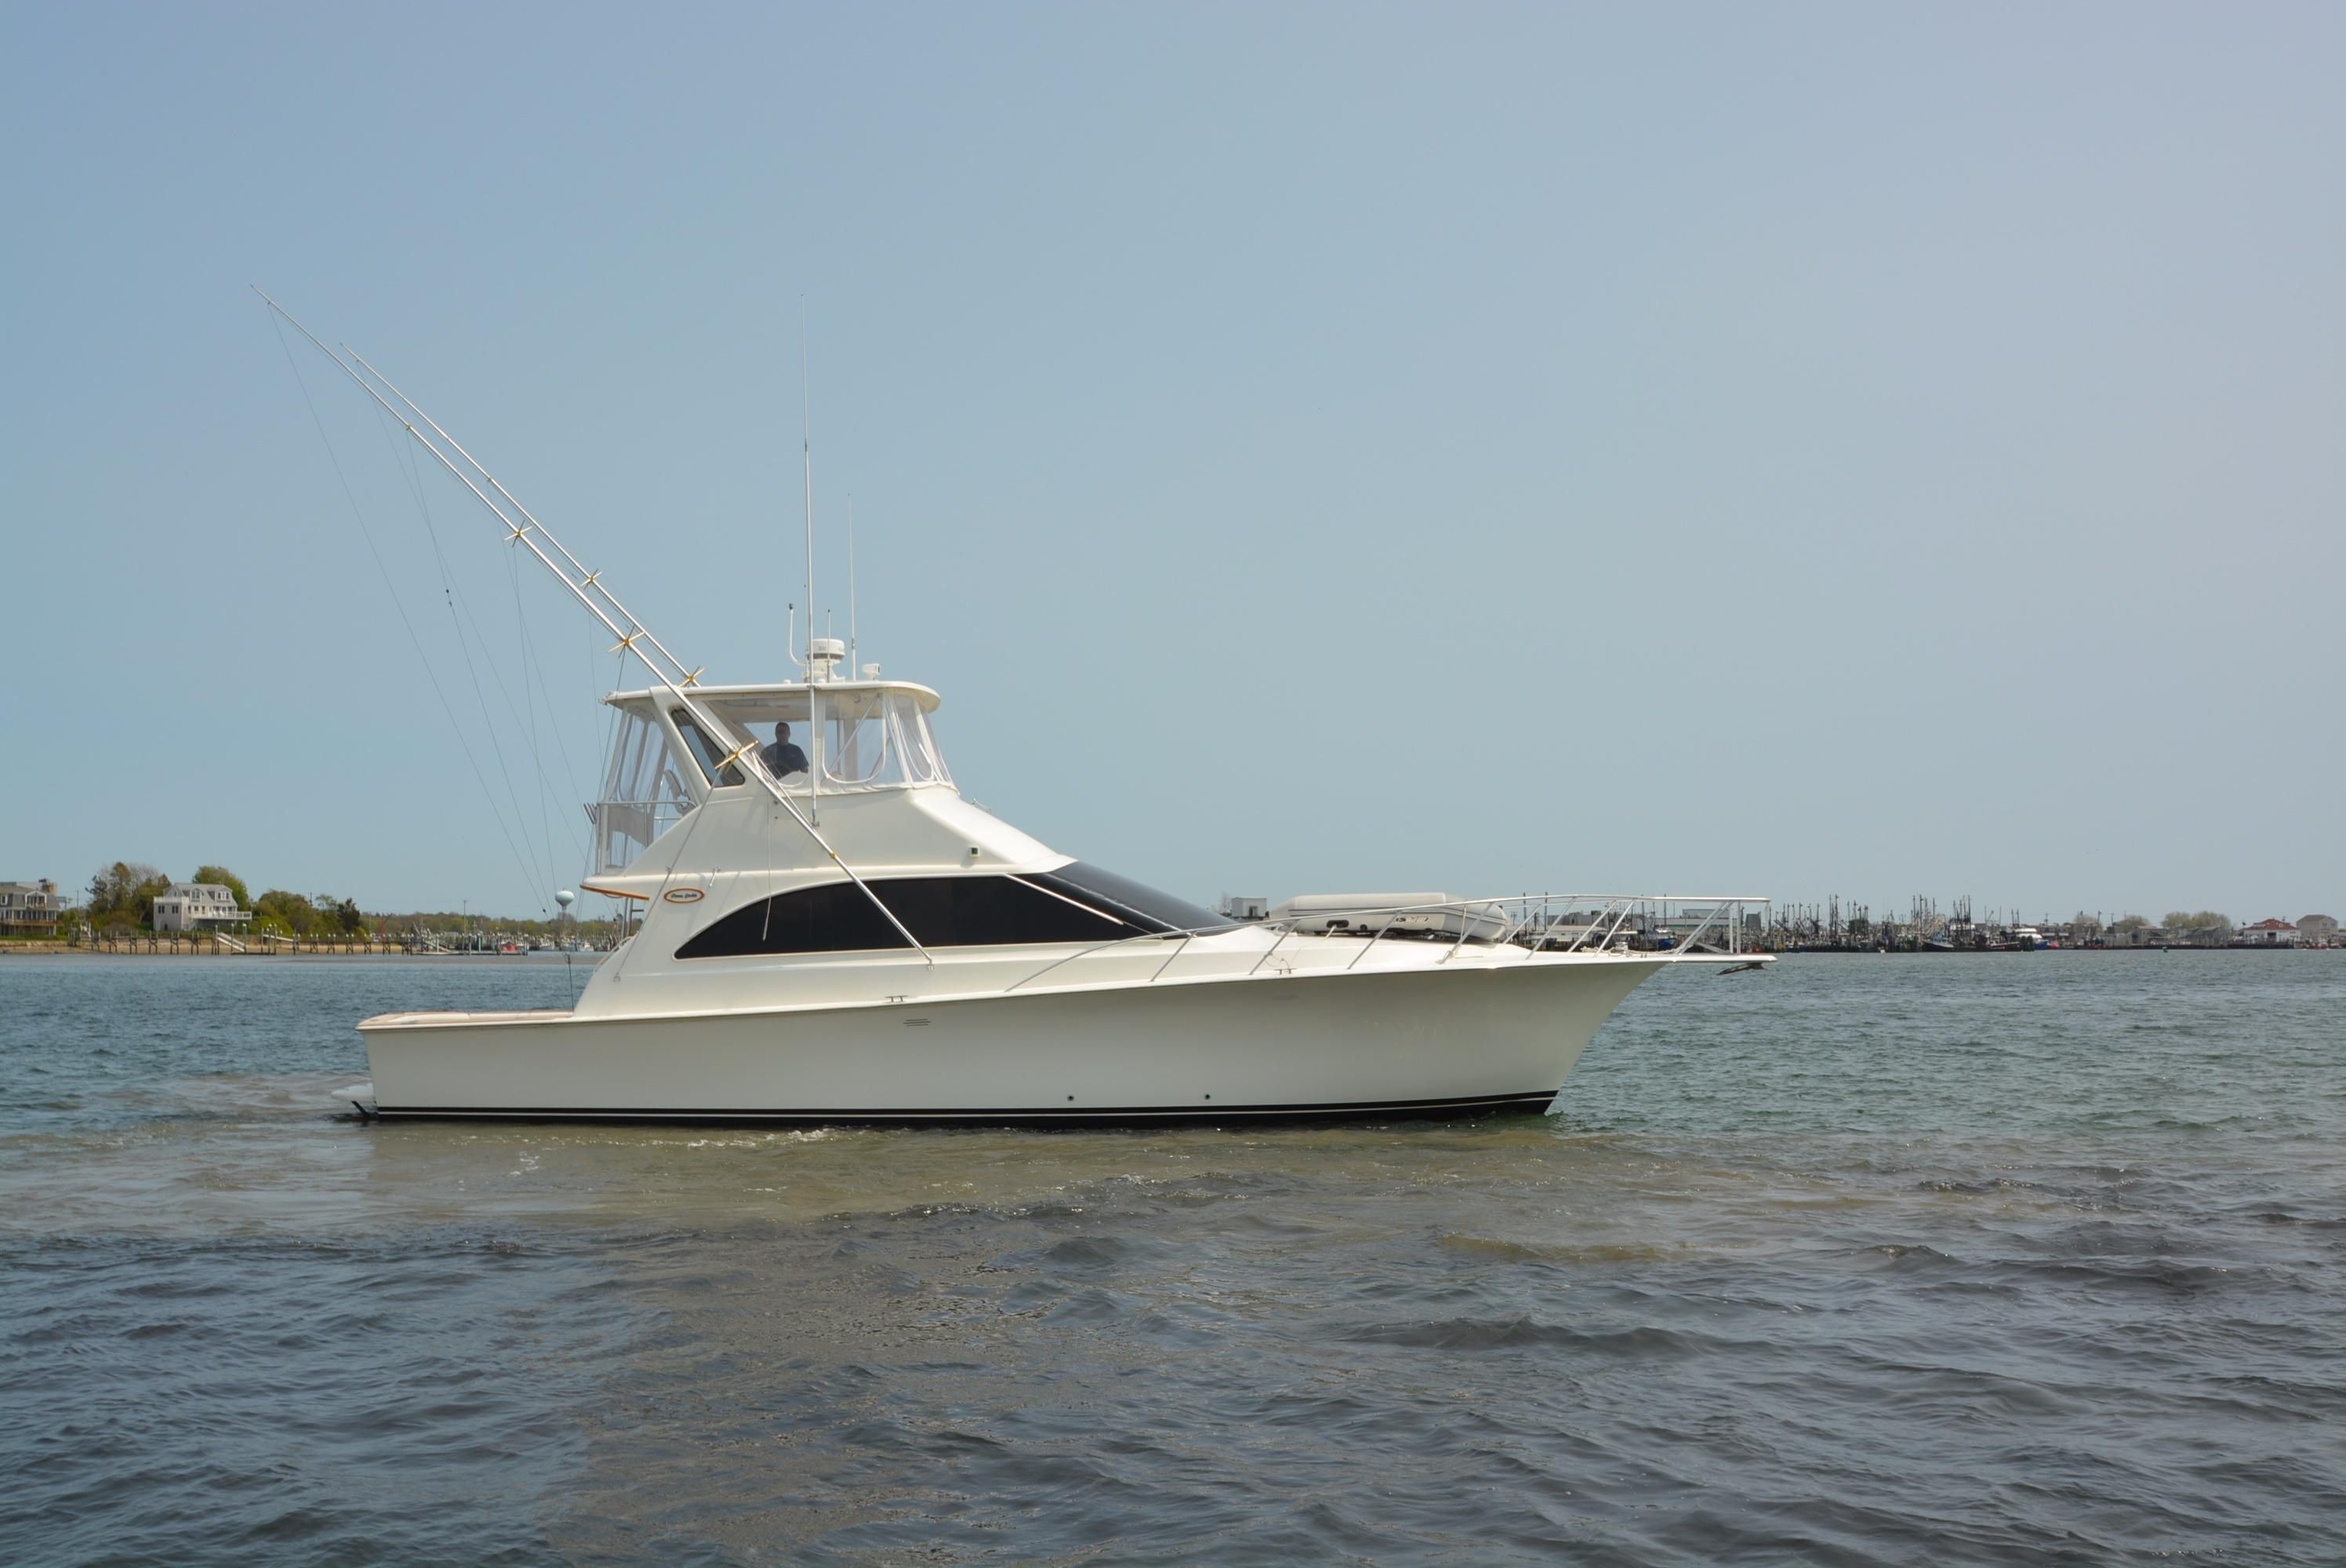 1997 ocean yachts super sport power boat for sale www for Ocean yachts 48 motor yacht for sale